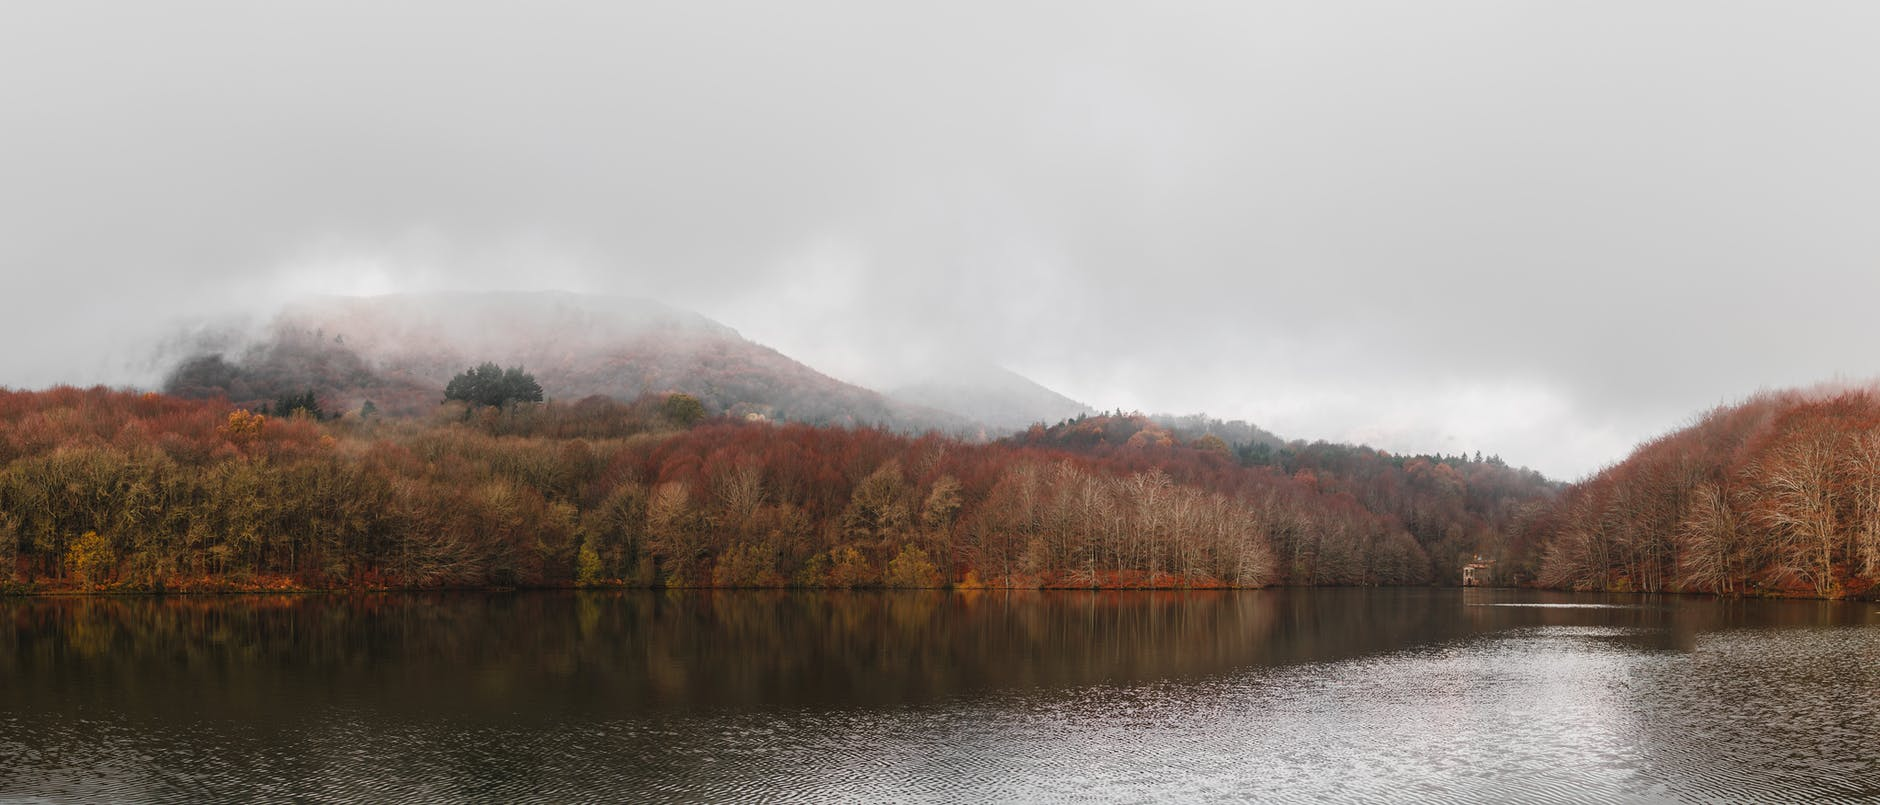 rippling lake with fall trees on shore